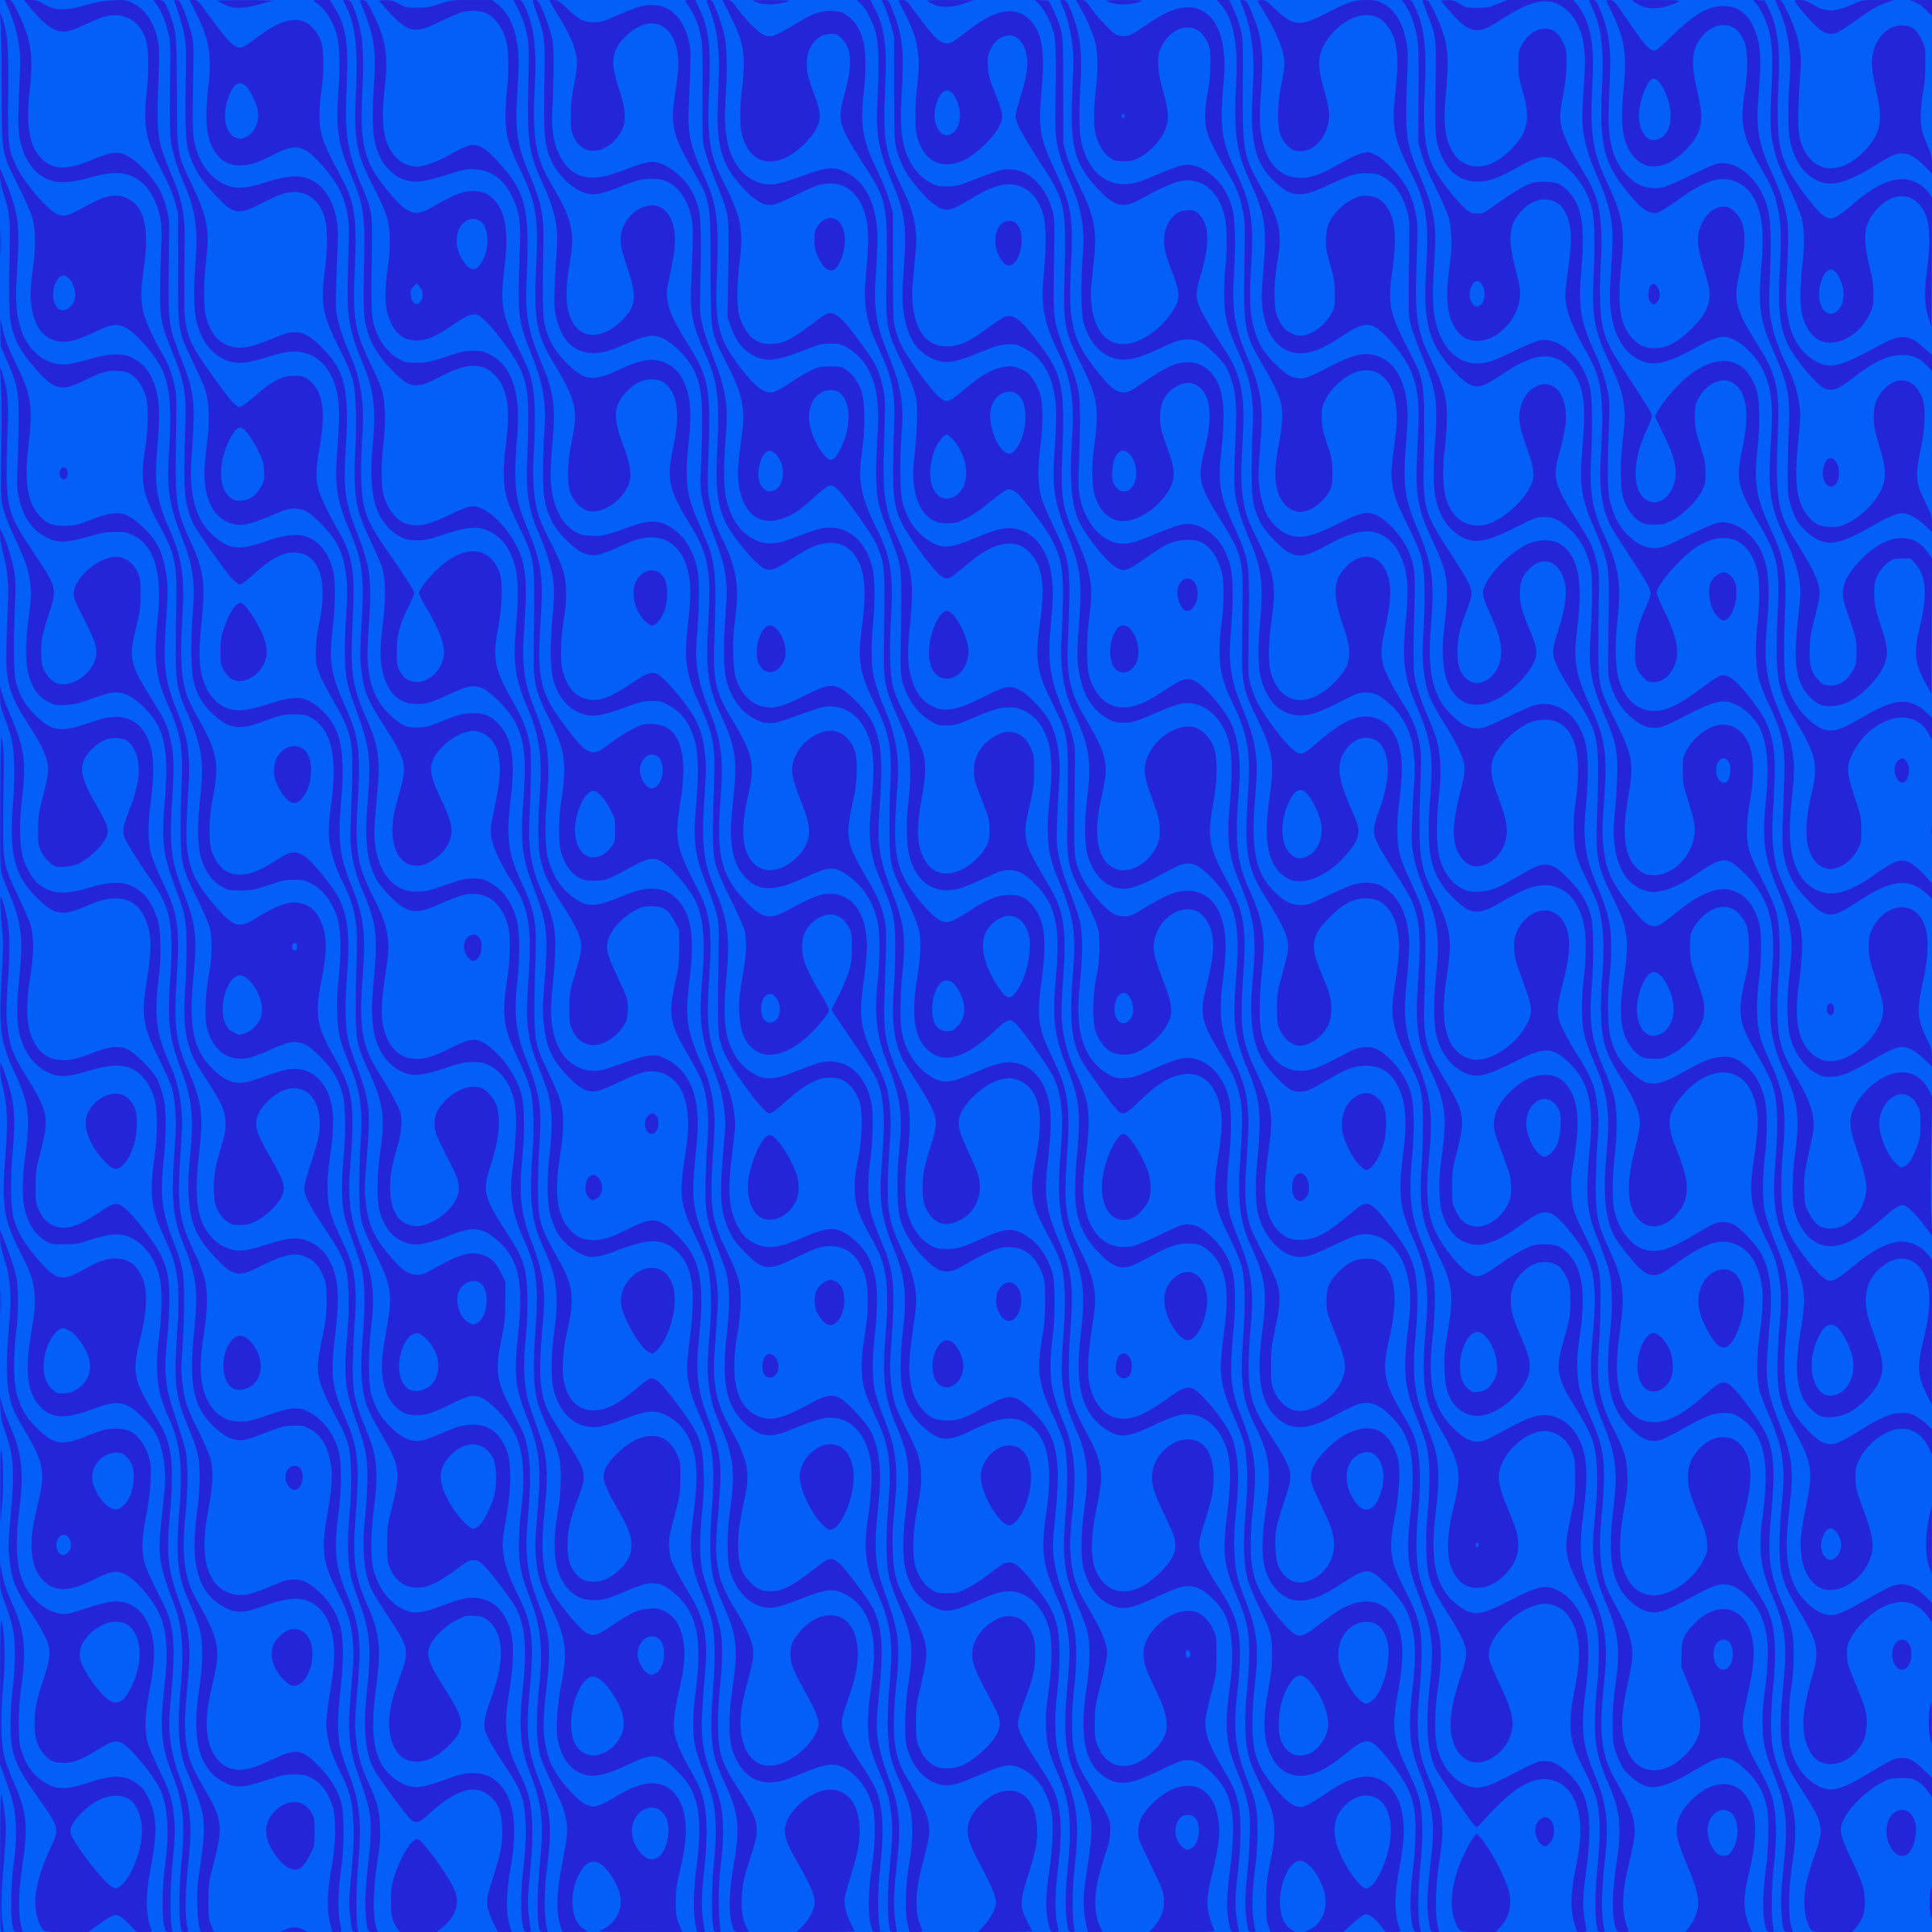 Background pattern 45 (two colour) by Firkin